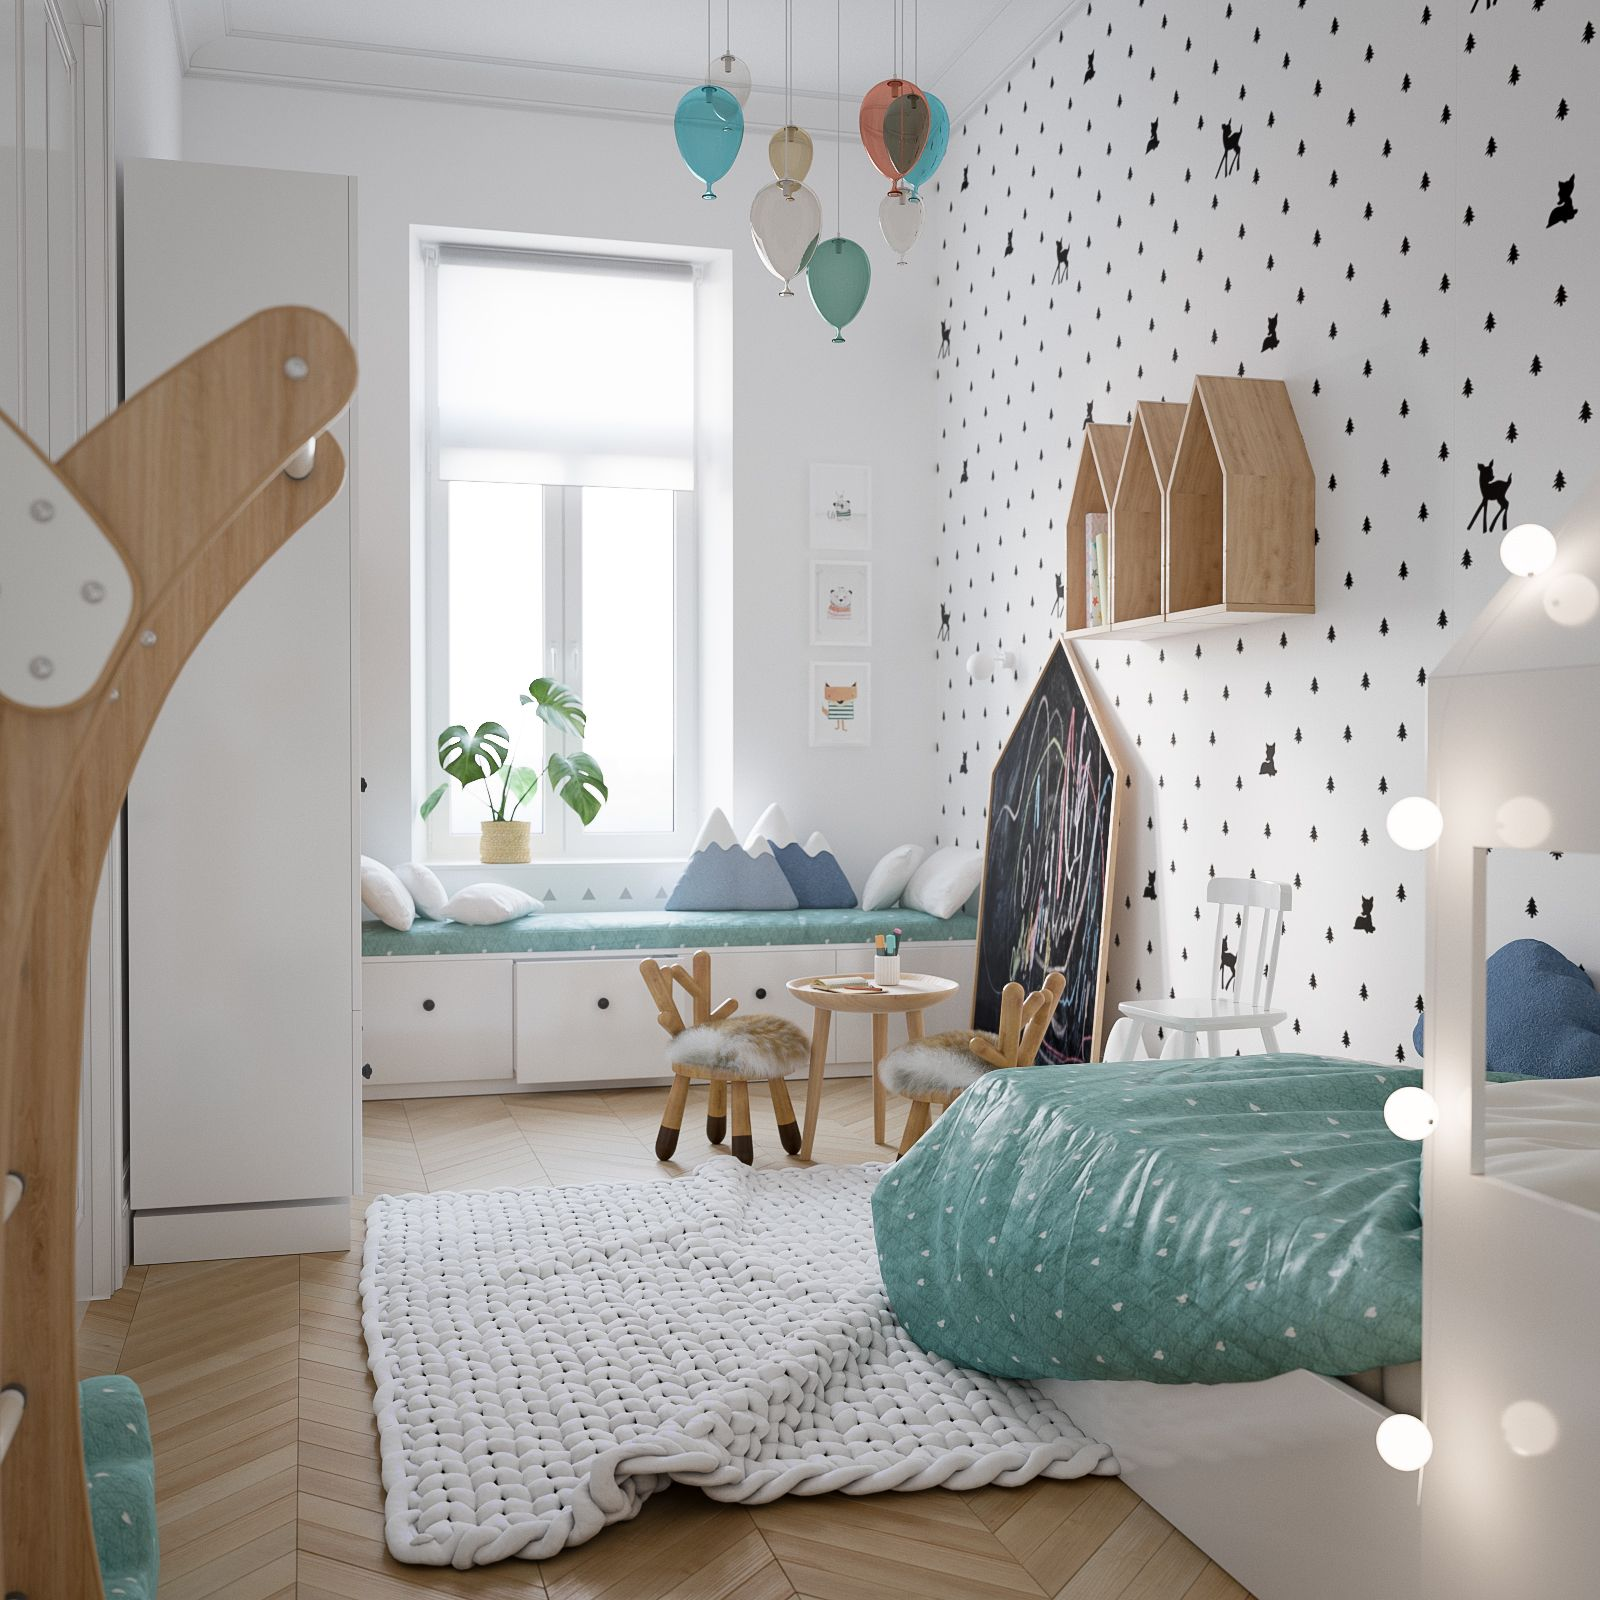 20 Best Small Modern Bedroom Ideas: Modern Scandinavian Style Home Design For Young Families